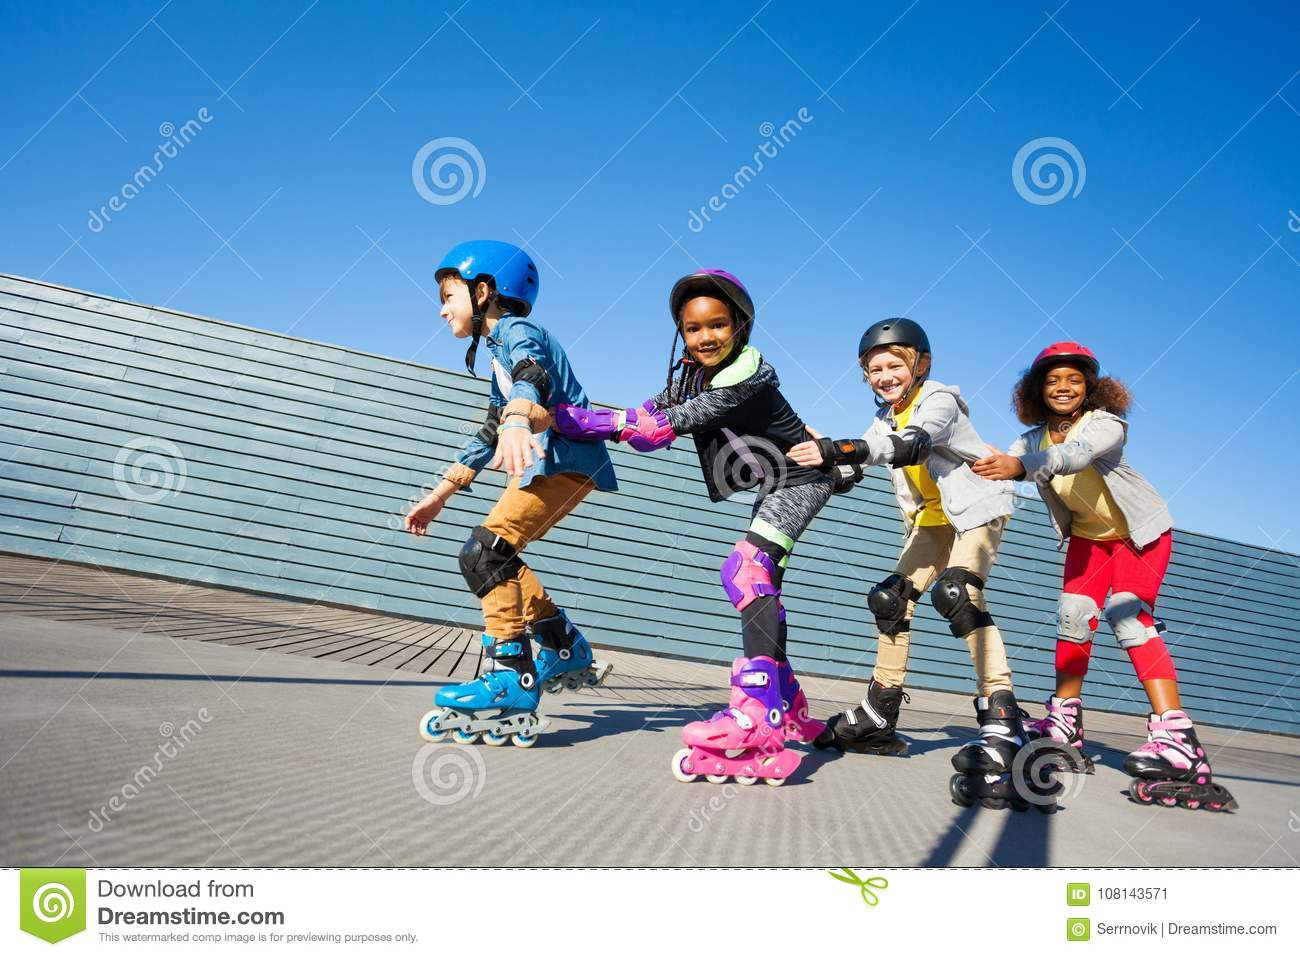 Cute kids rollerblading one after another outdoors